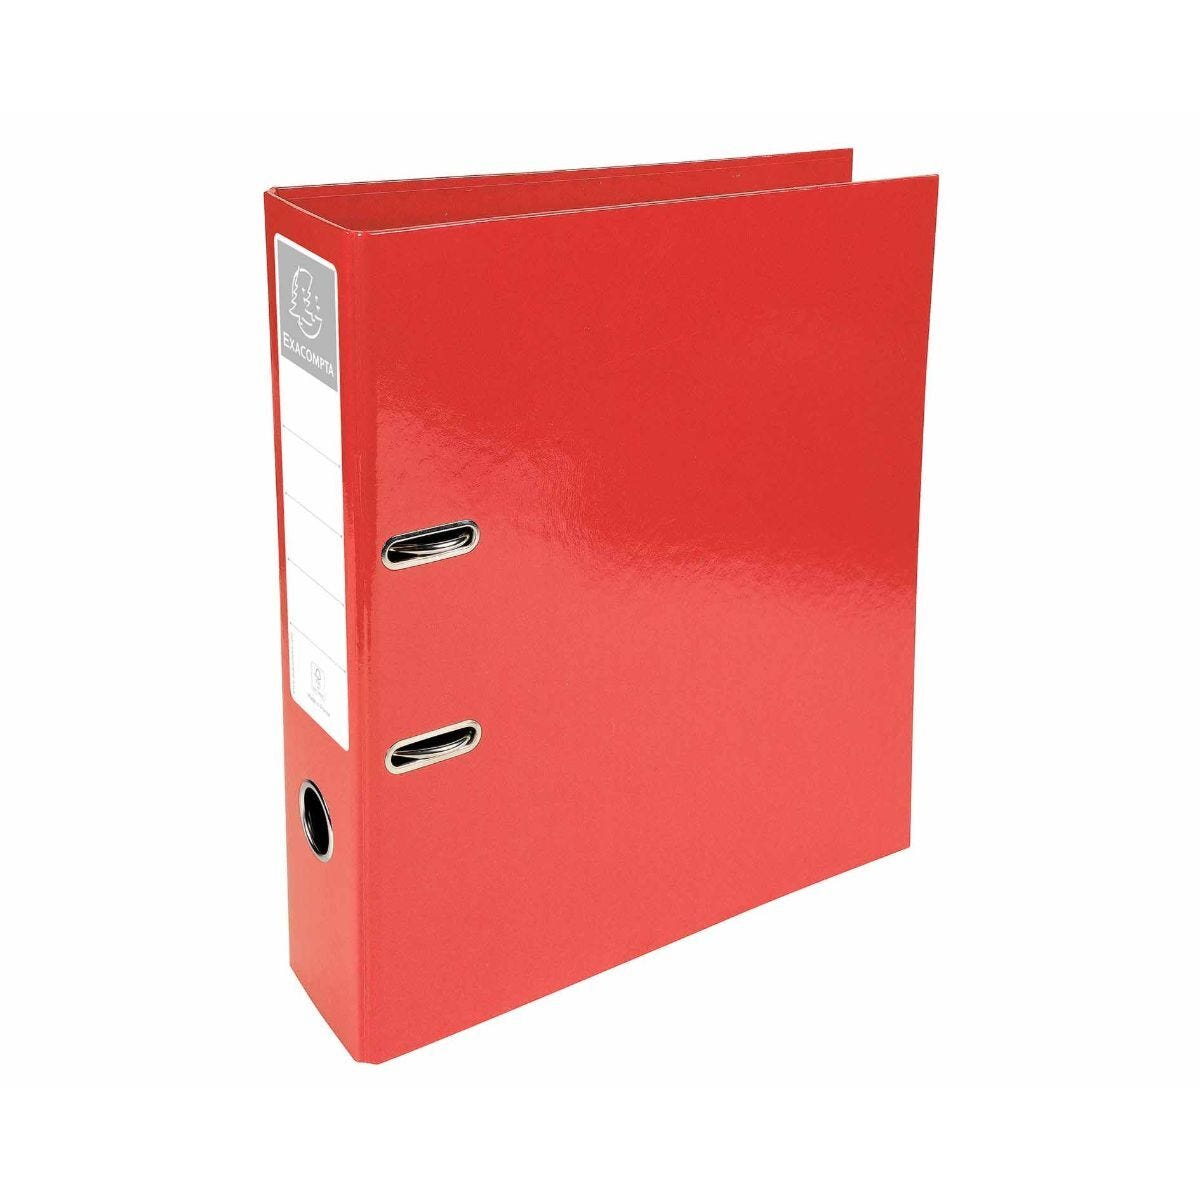 Exacompta Iderama PremTouch Lever Arch File A4 70mm Pack of 10 Red